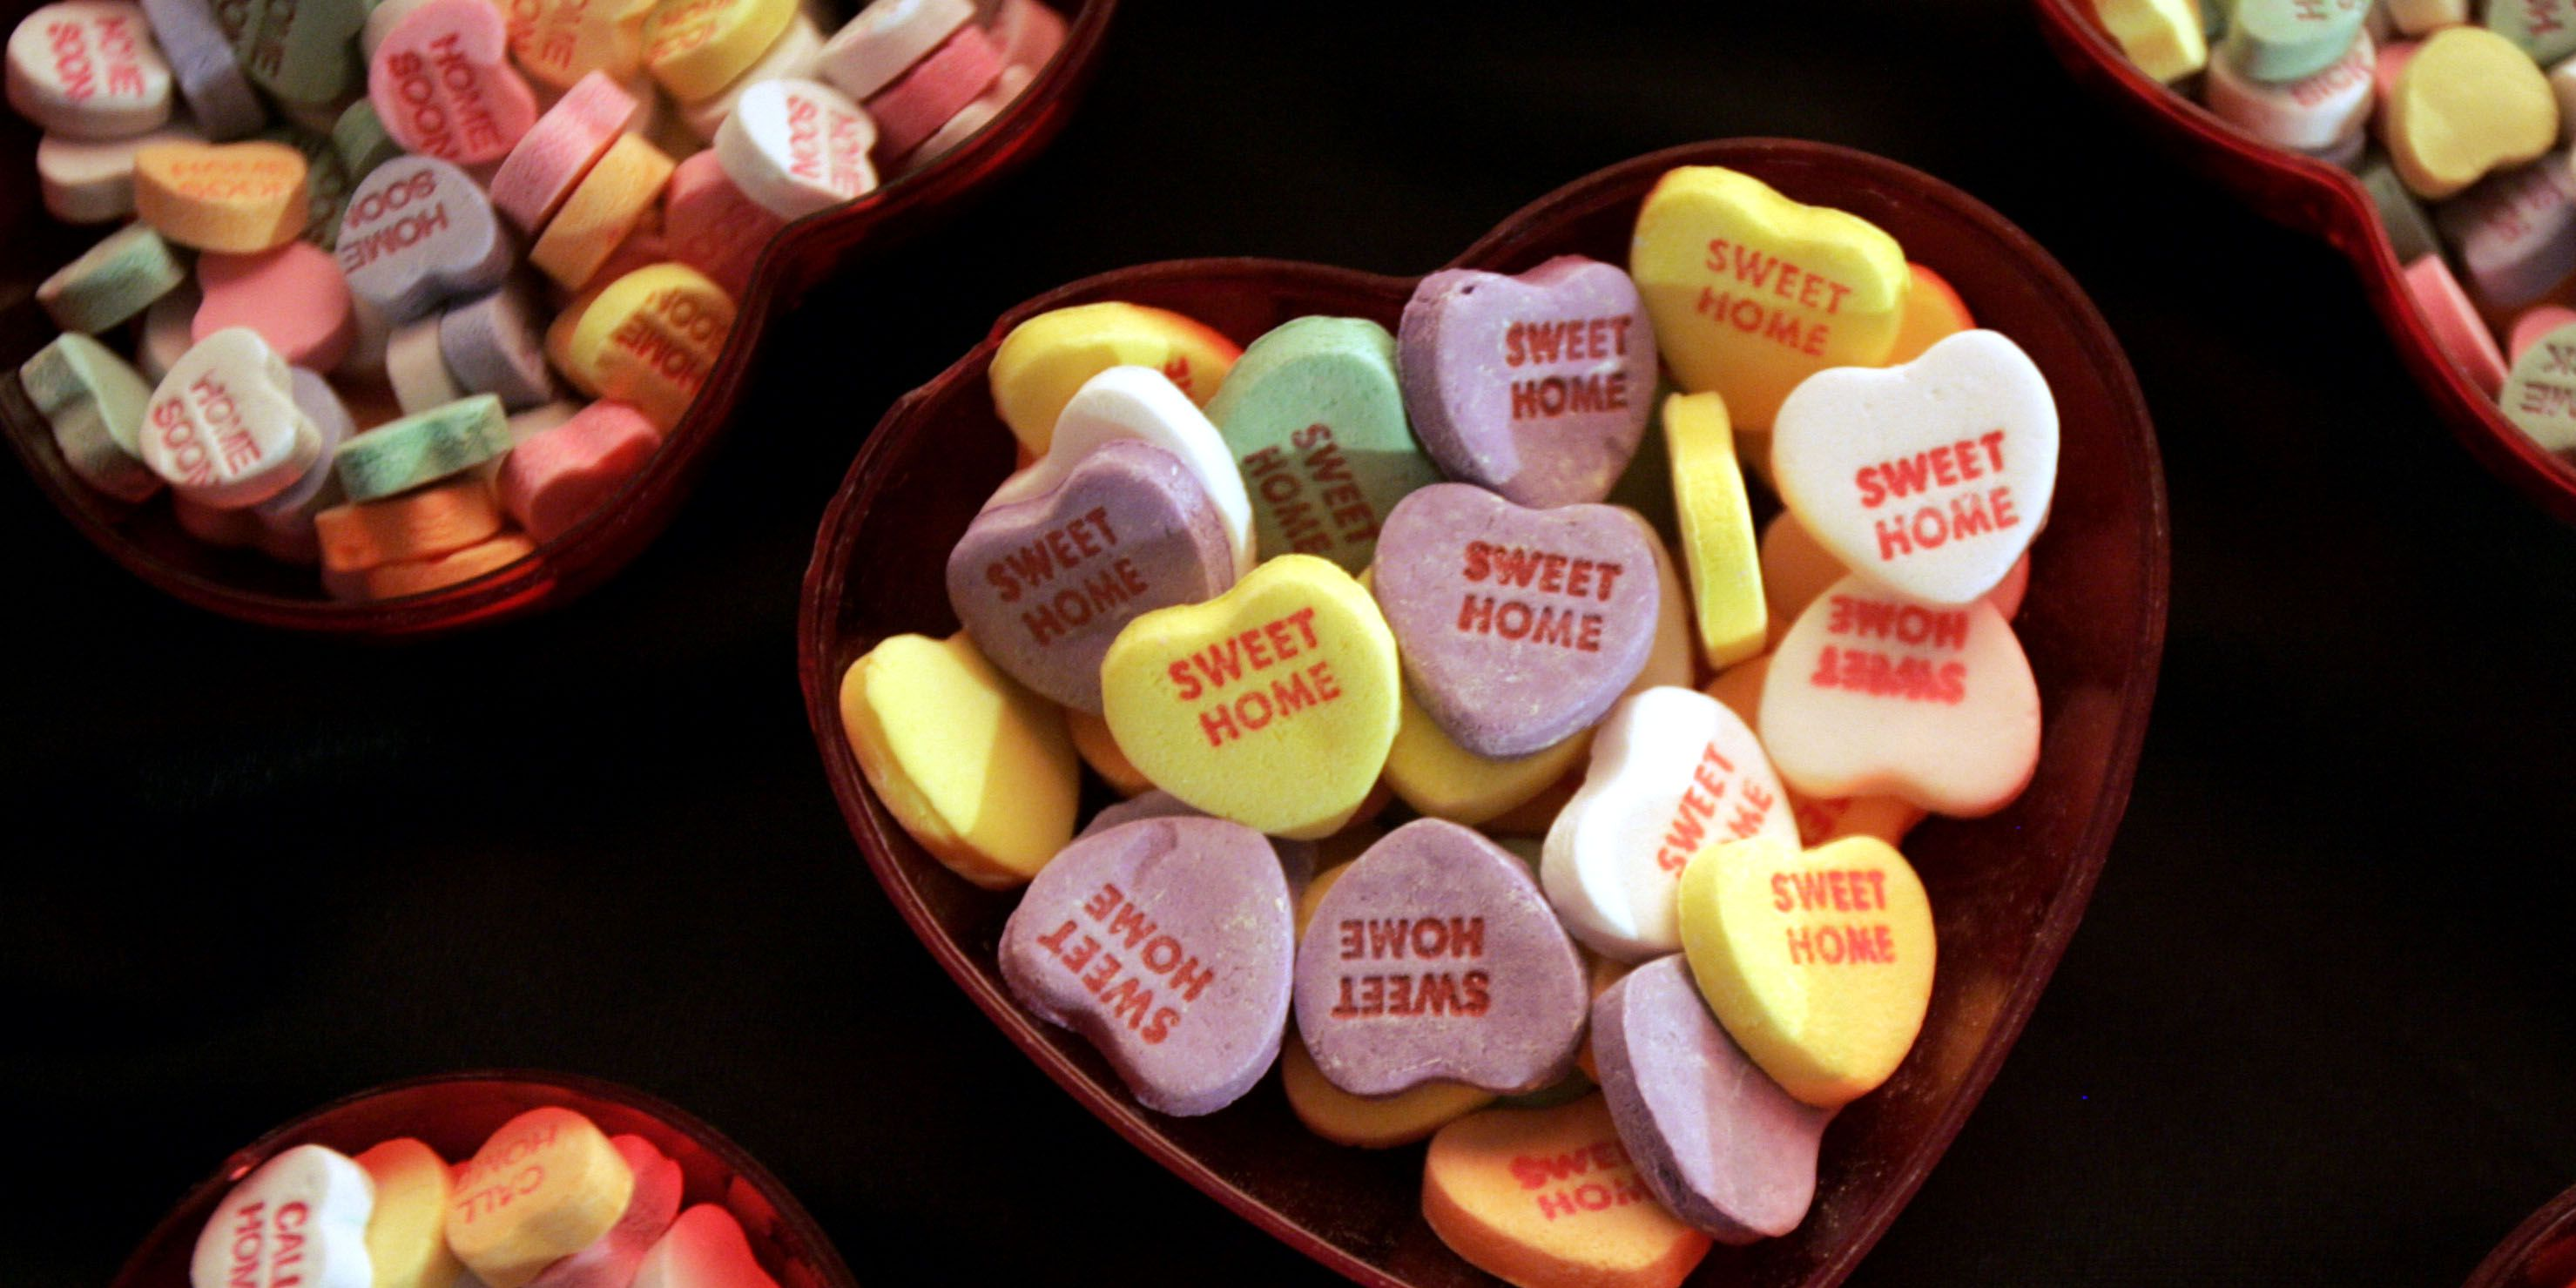 So long, Sweethearts: Candy hearts not available for Valentine's Day